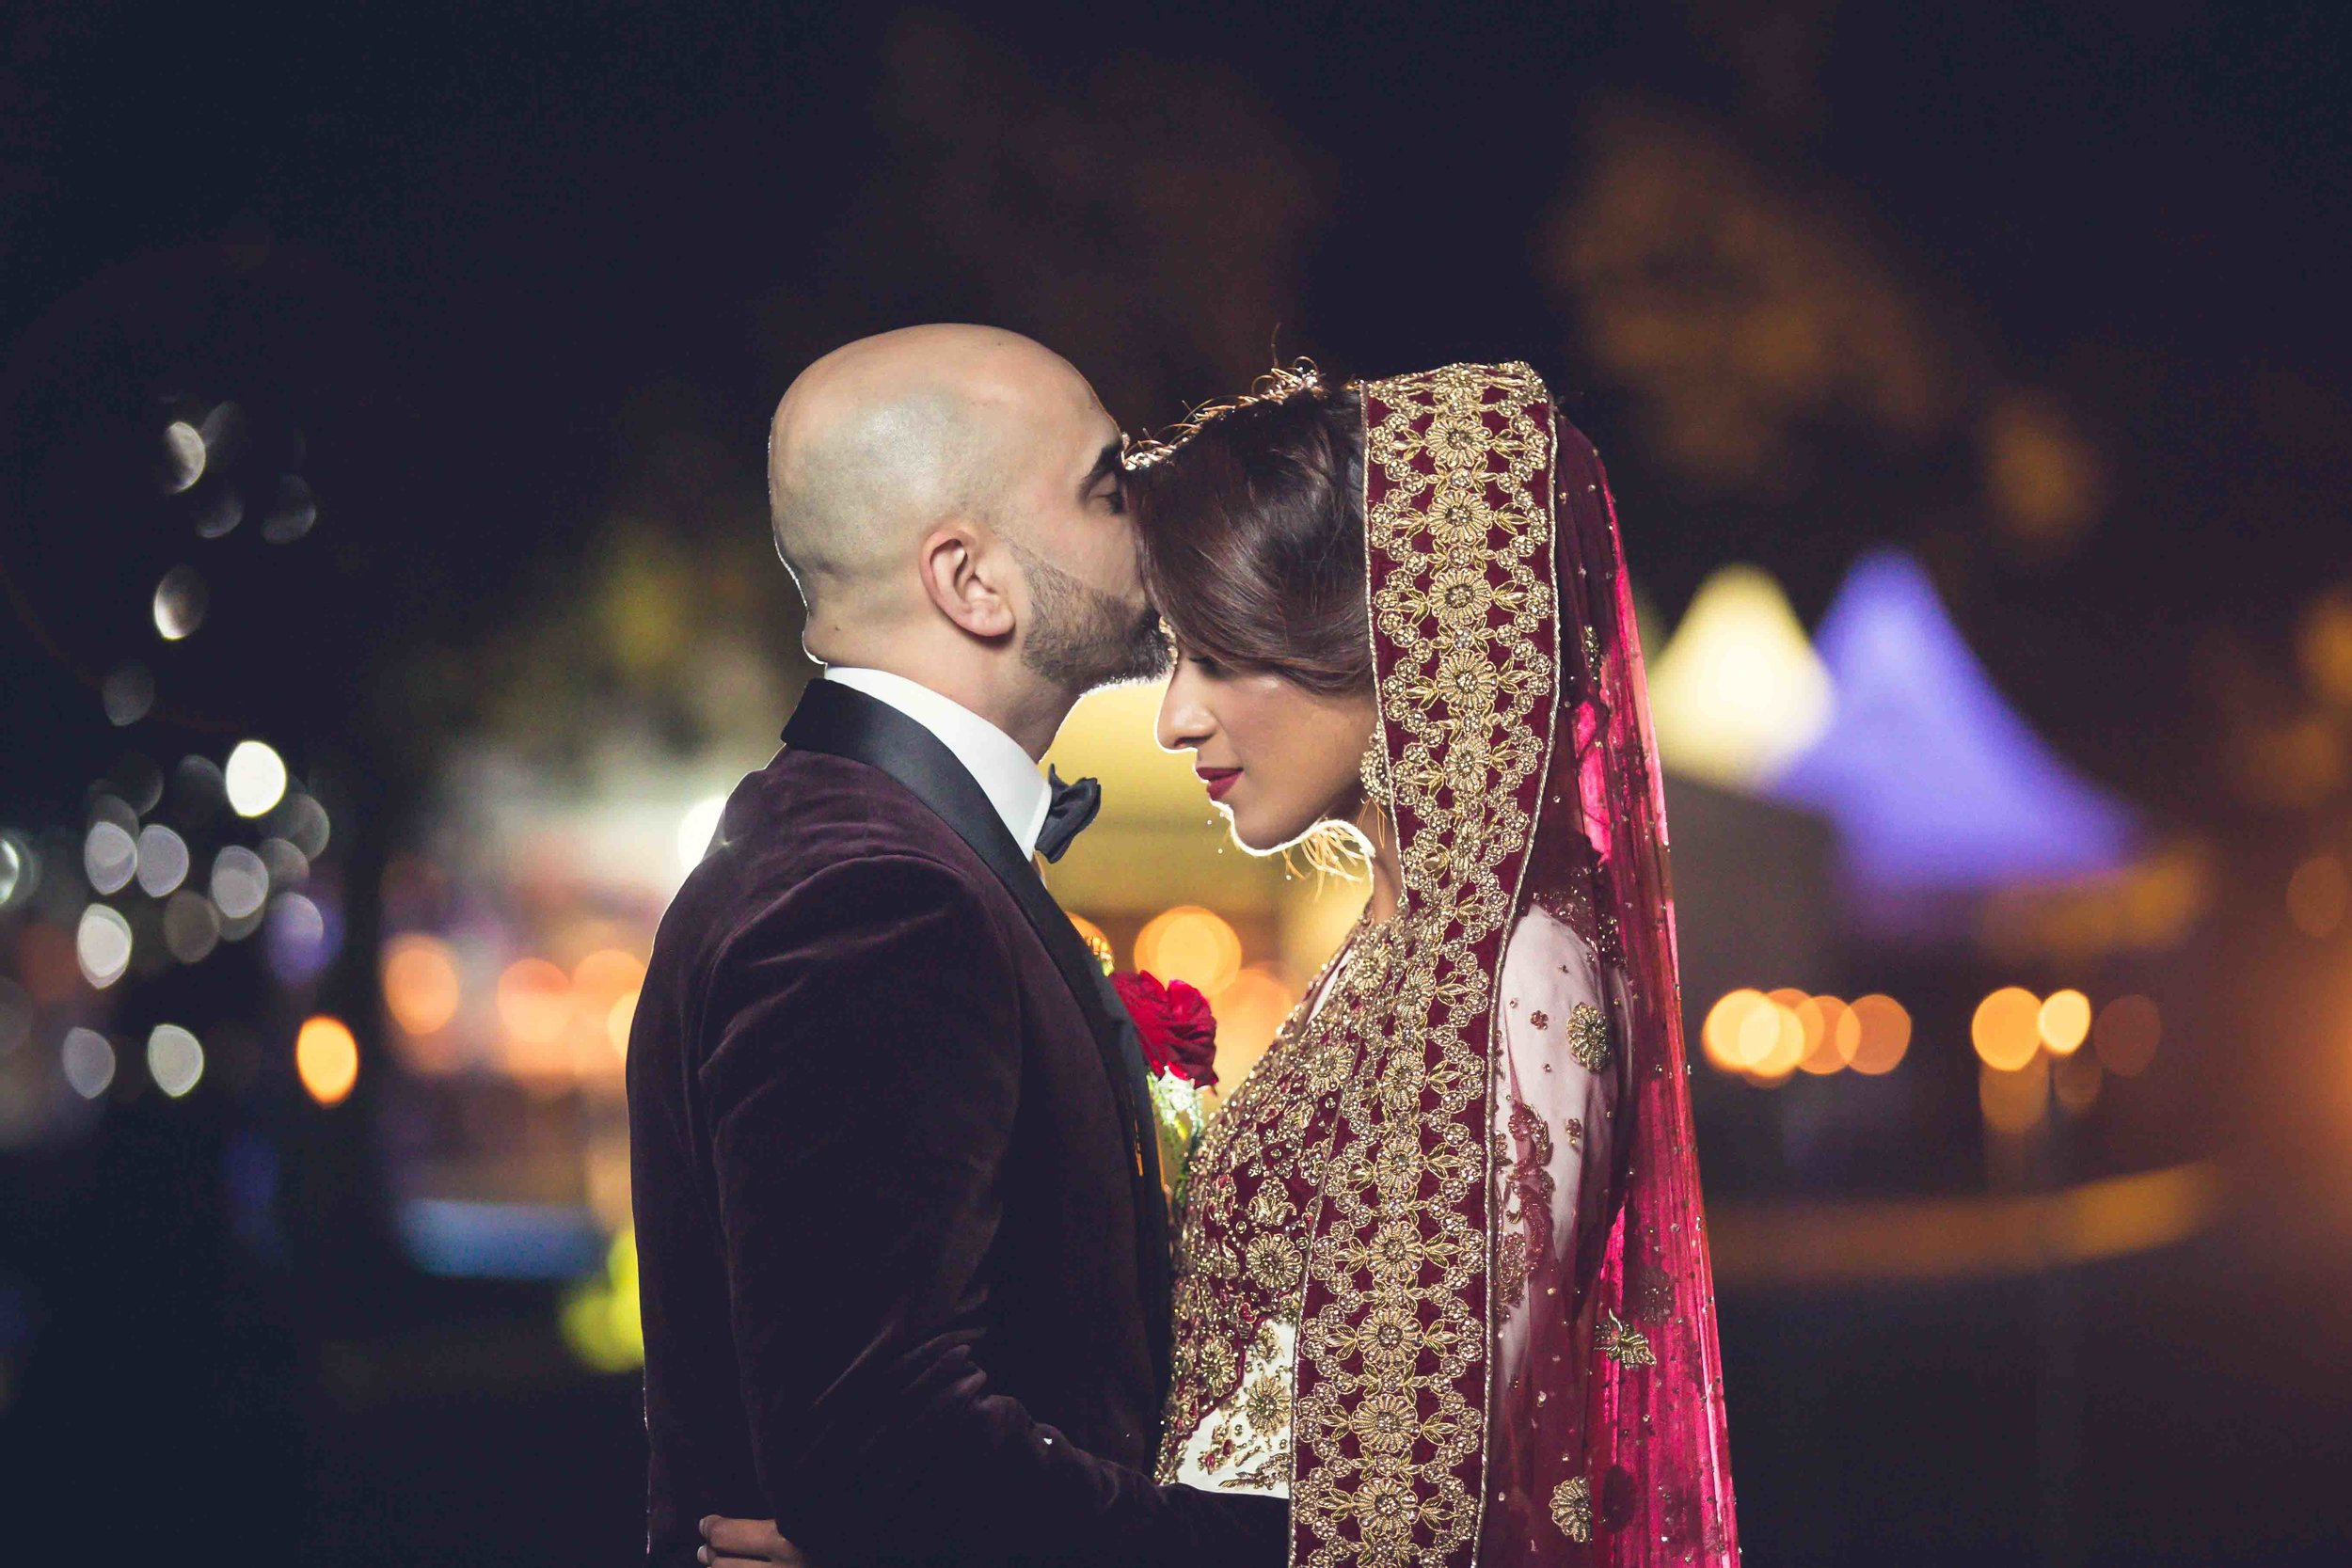 Asian Wedding Photographer Opu Sultan Photography Lyme Park Scotland Edinburgh Glasgow London Manchester Liverpool Birmingham Wedding Photos prewed shoot Azman & Saira Blog-133.jpg